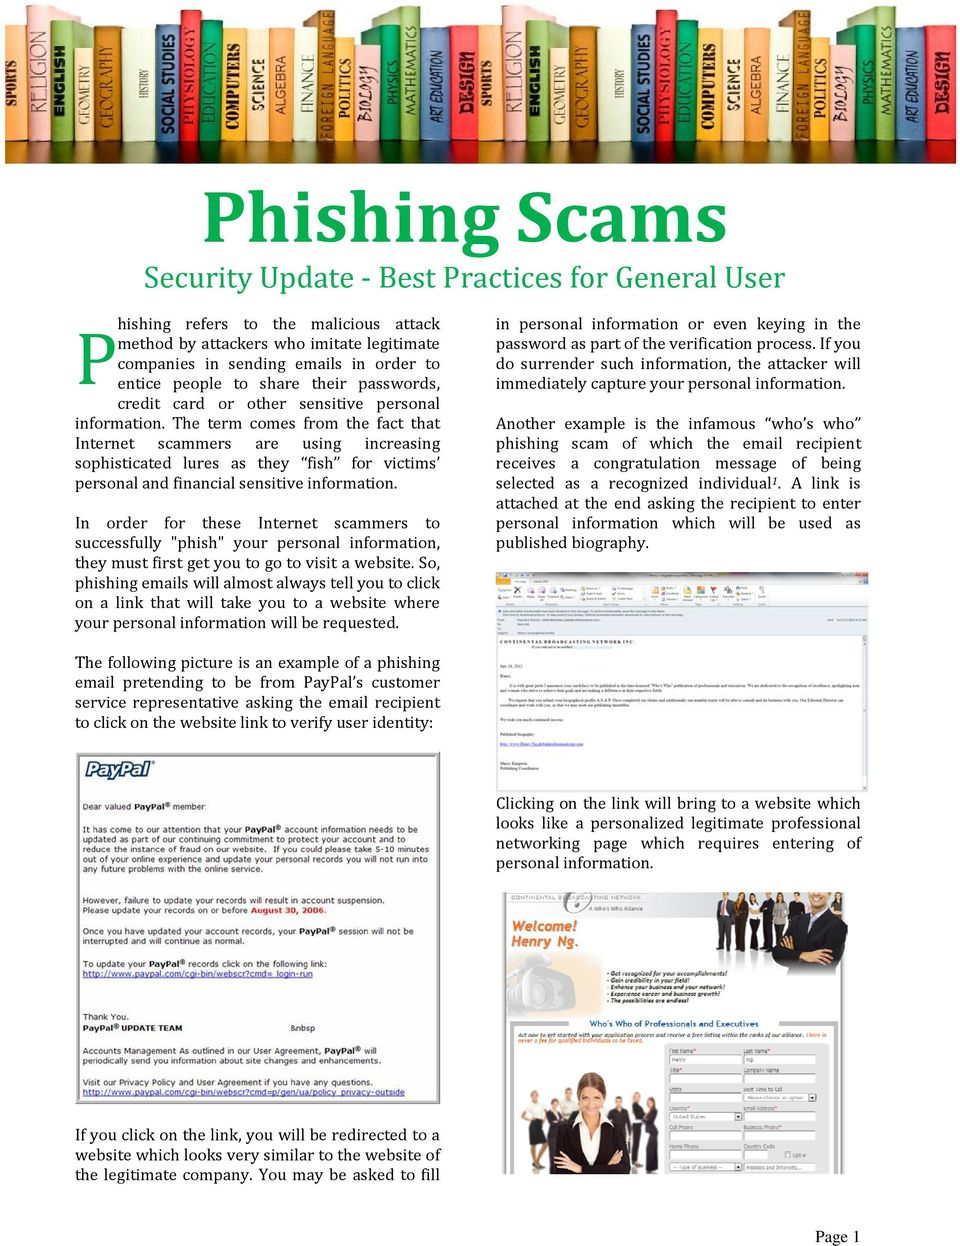 The term comes from the fact that Internet scammers are using increasing sophisticated lures as they fish for victims personal and financial sensitive information.